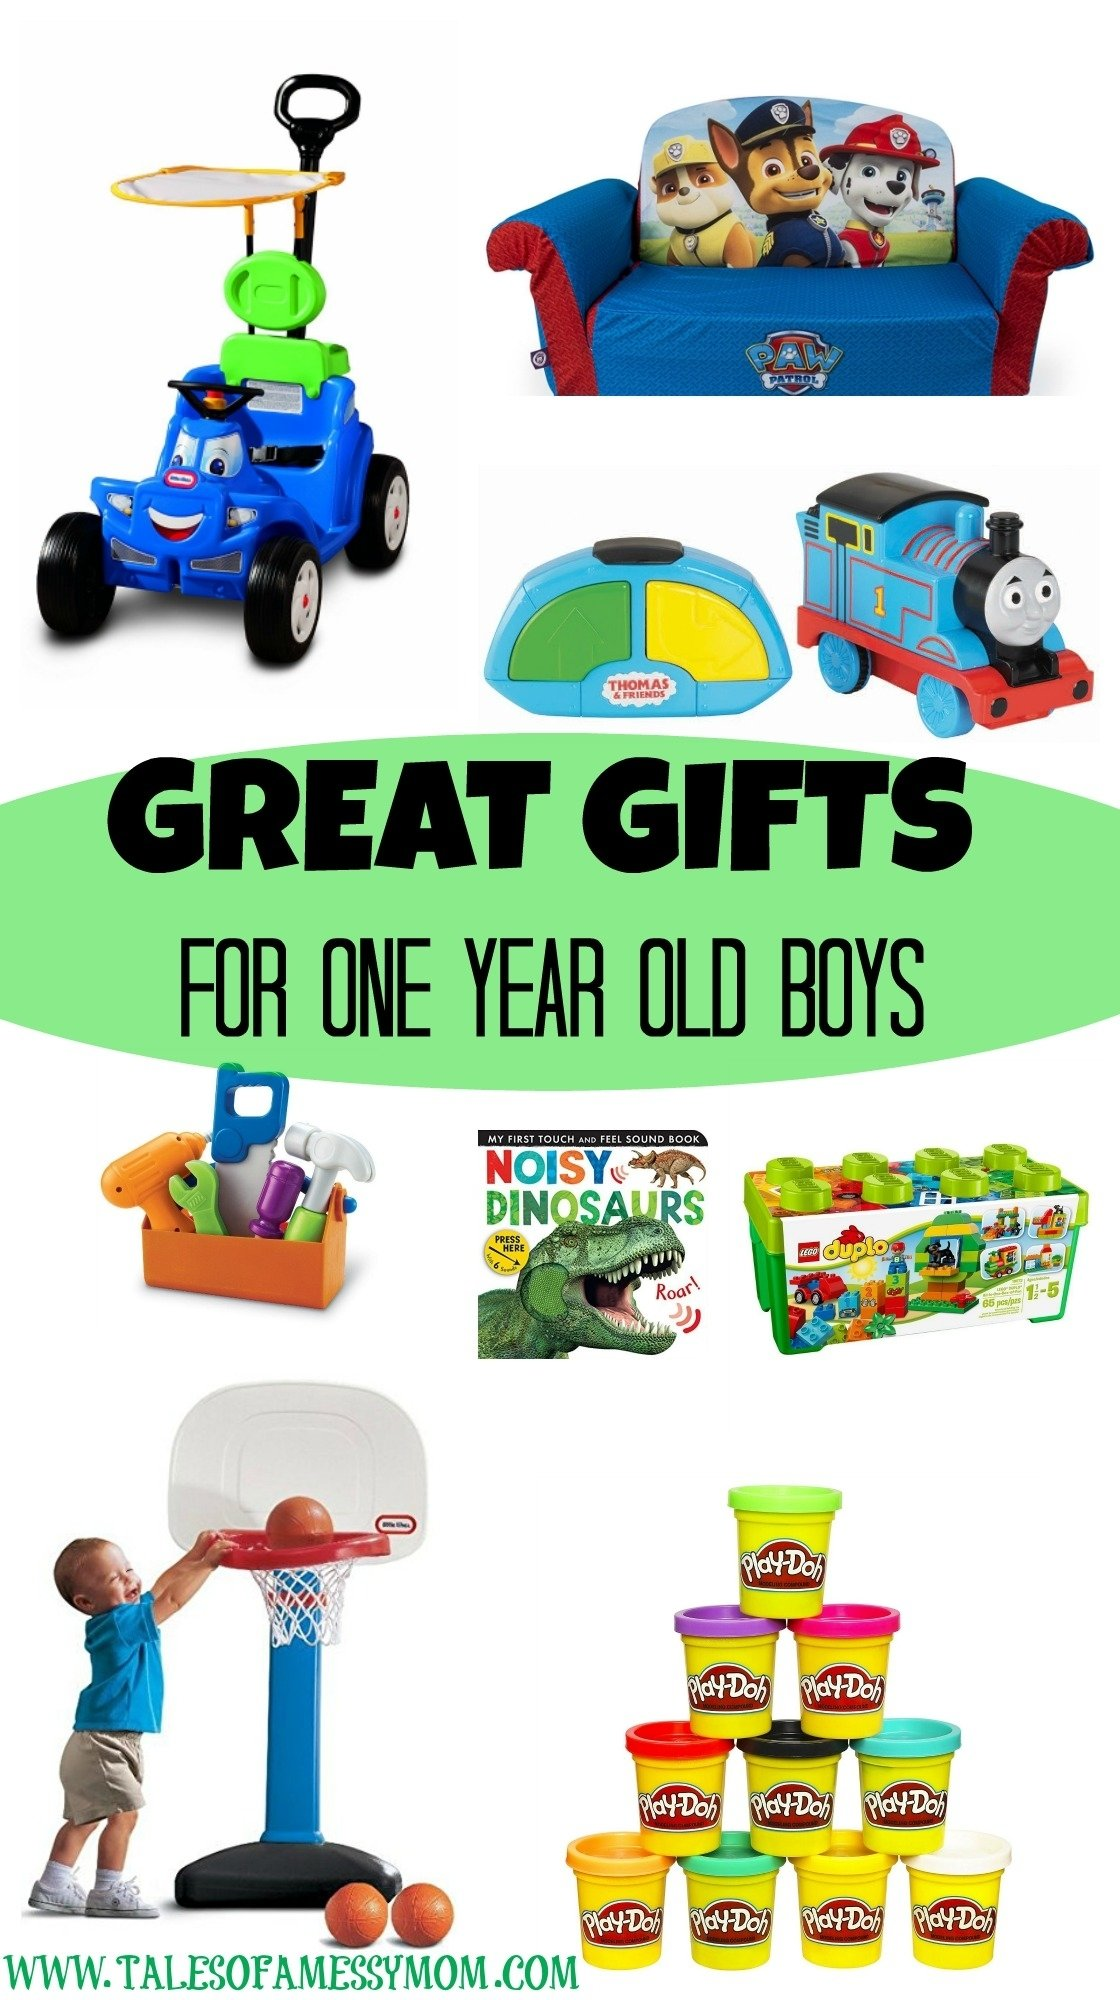 10 Unique Gift Ideas For One Year Old Boy gift ideas for one year old boys tales of a messy mom